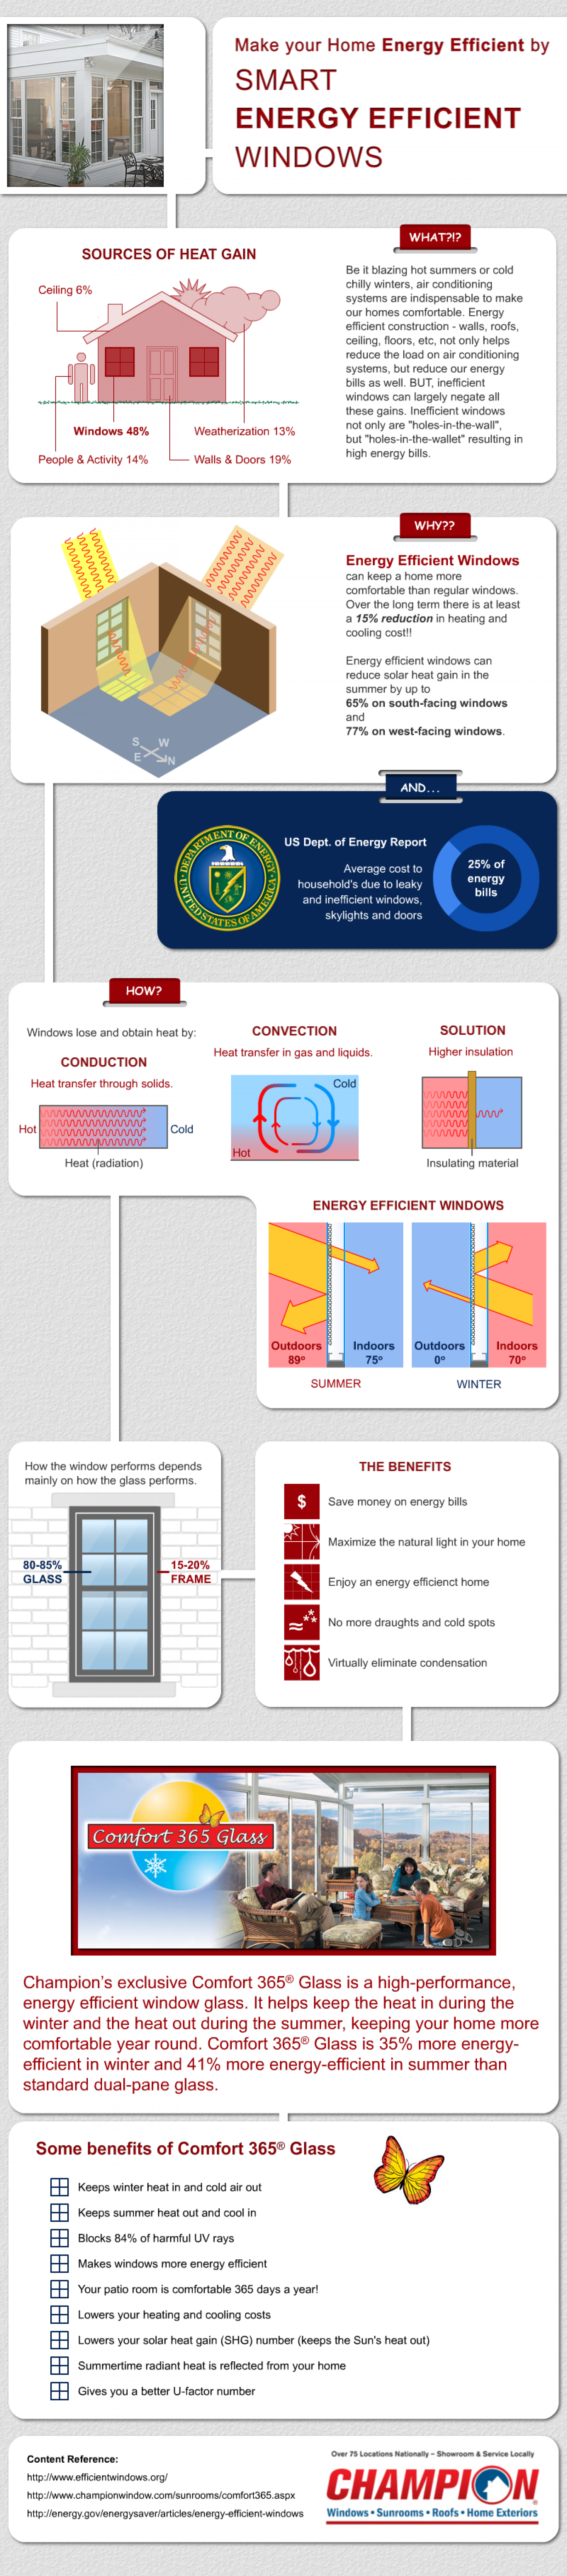 Smart Energy Efficient Windows Infographic